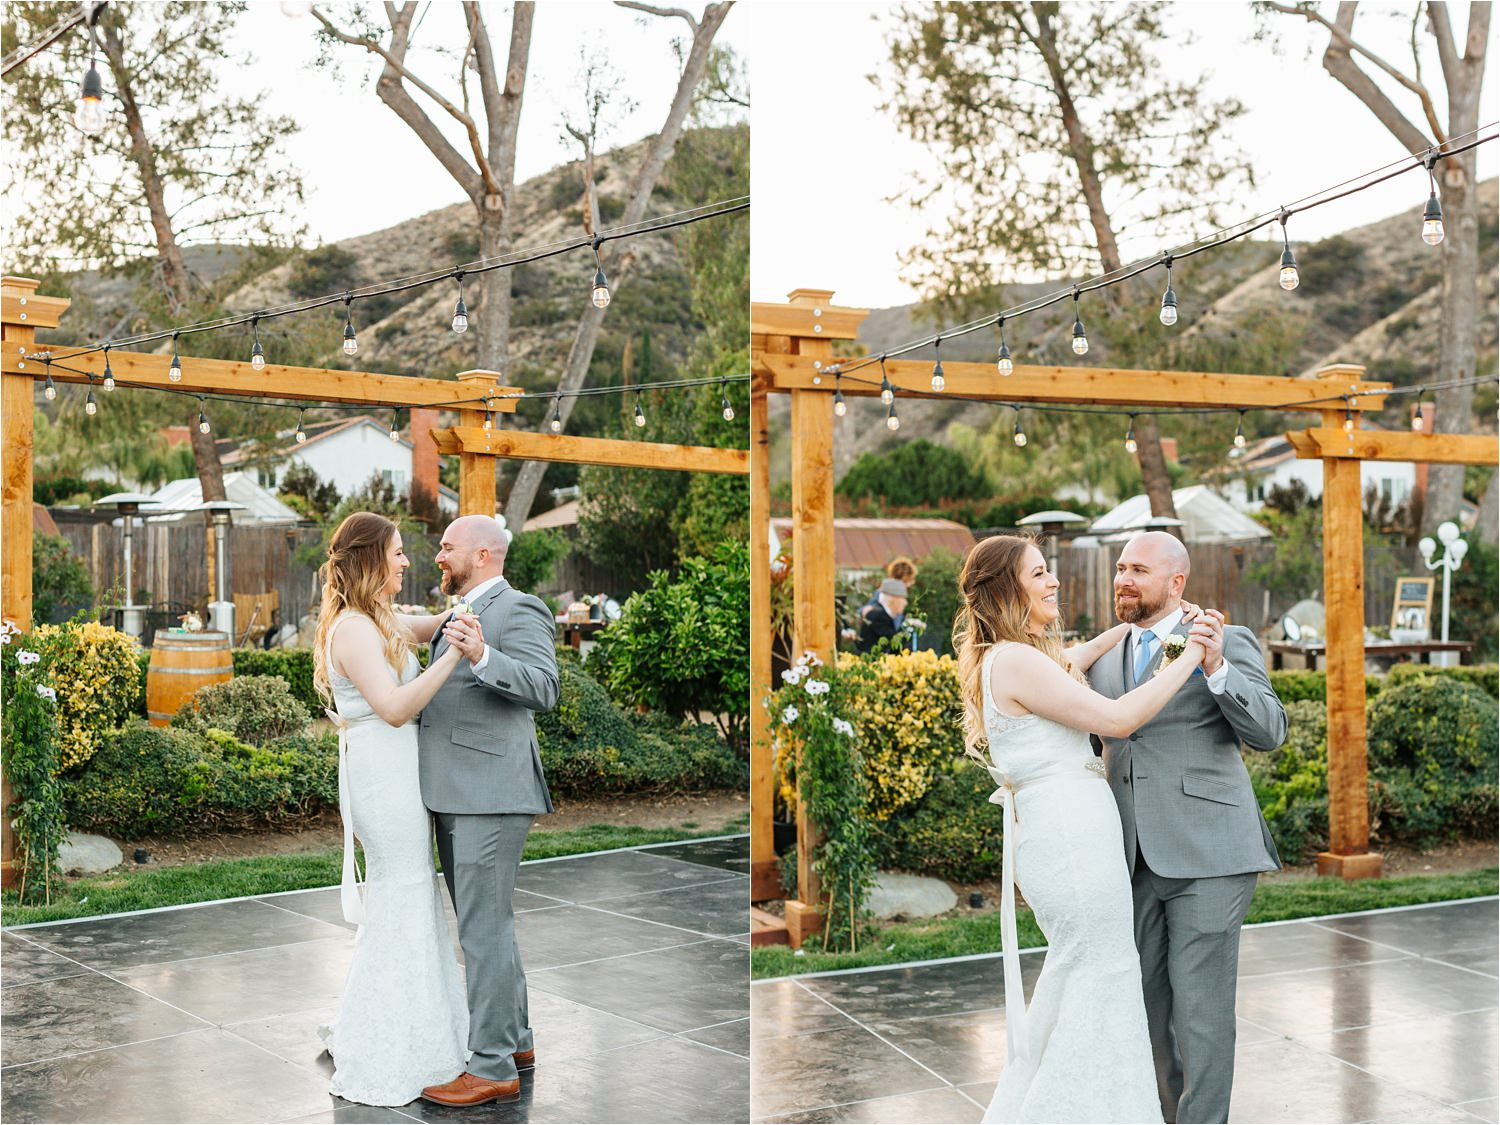 Romantic first dance between bride and groom - https://brittneyhannonphotography.com